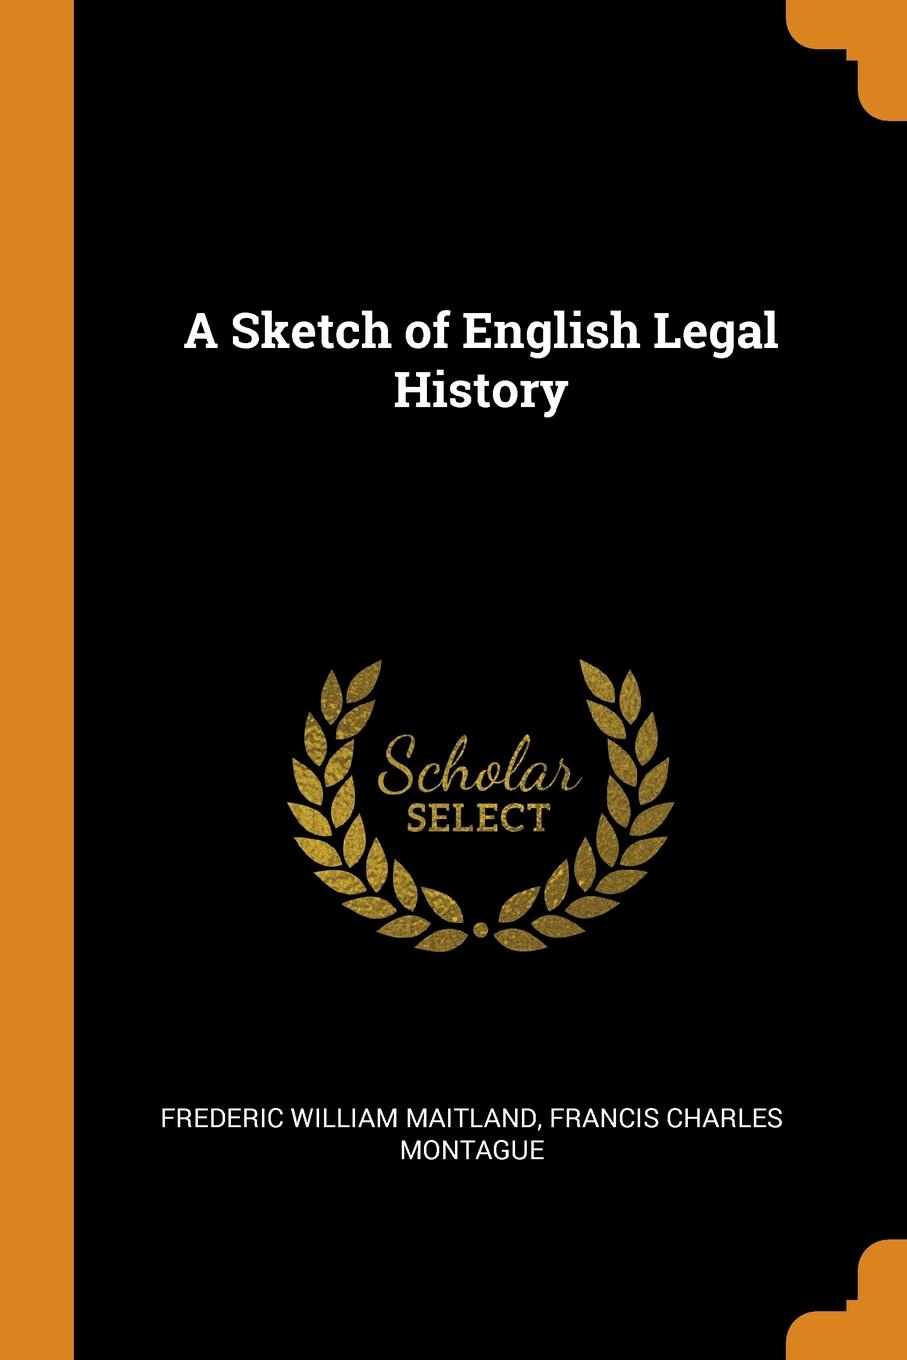 A Sketch of English Legal History. Frederic William Maitland, Francis Charles Montague